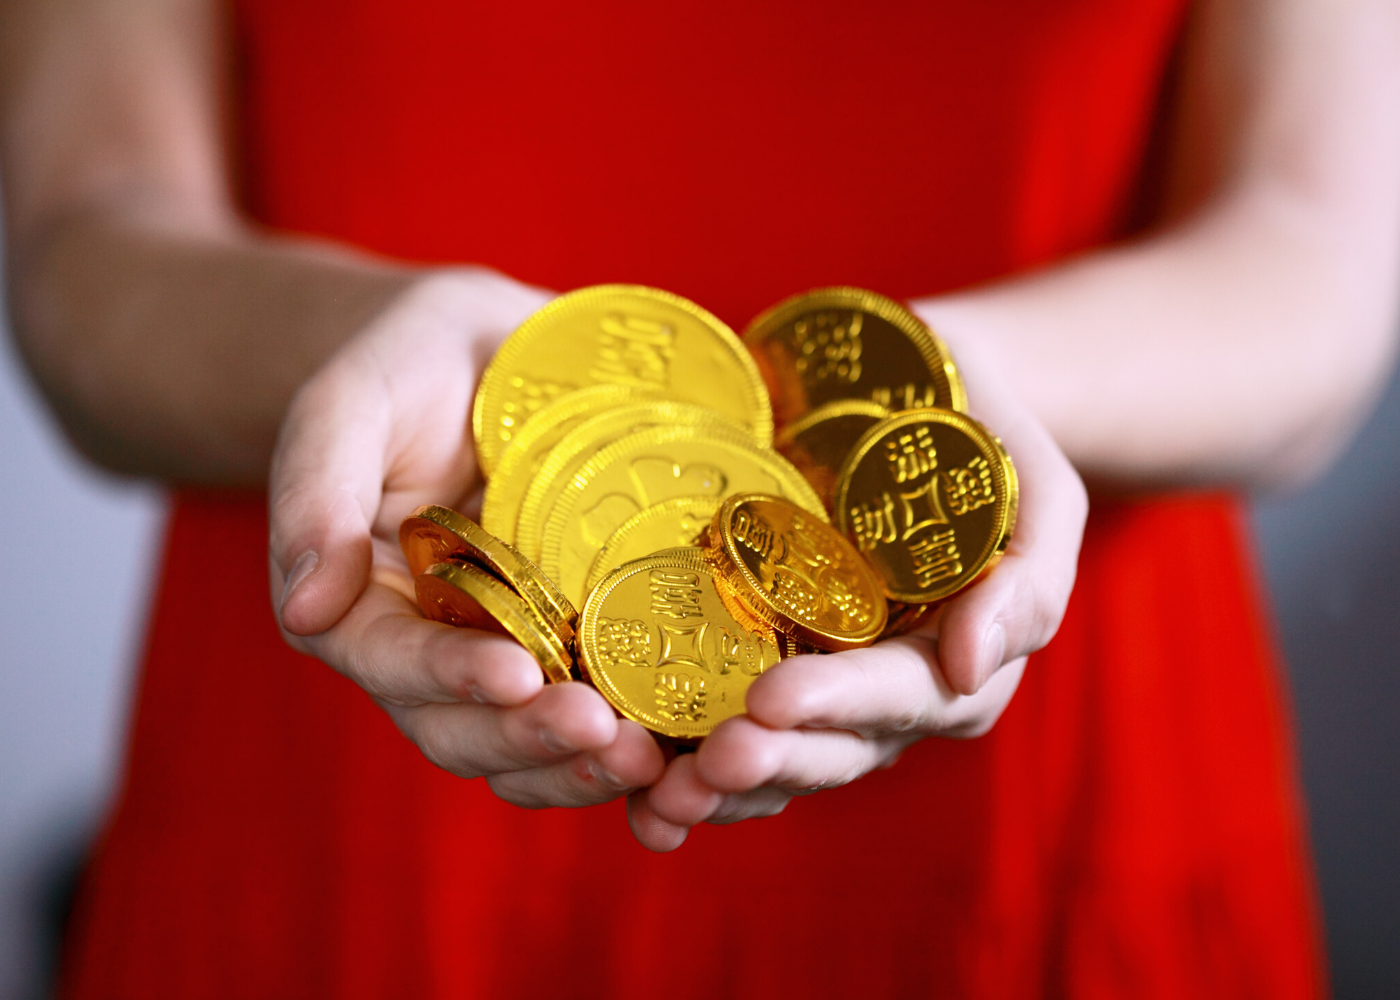 woman in red holding chocolate gold coins